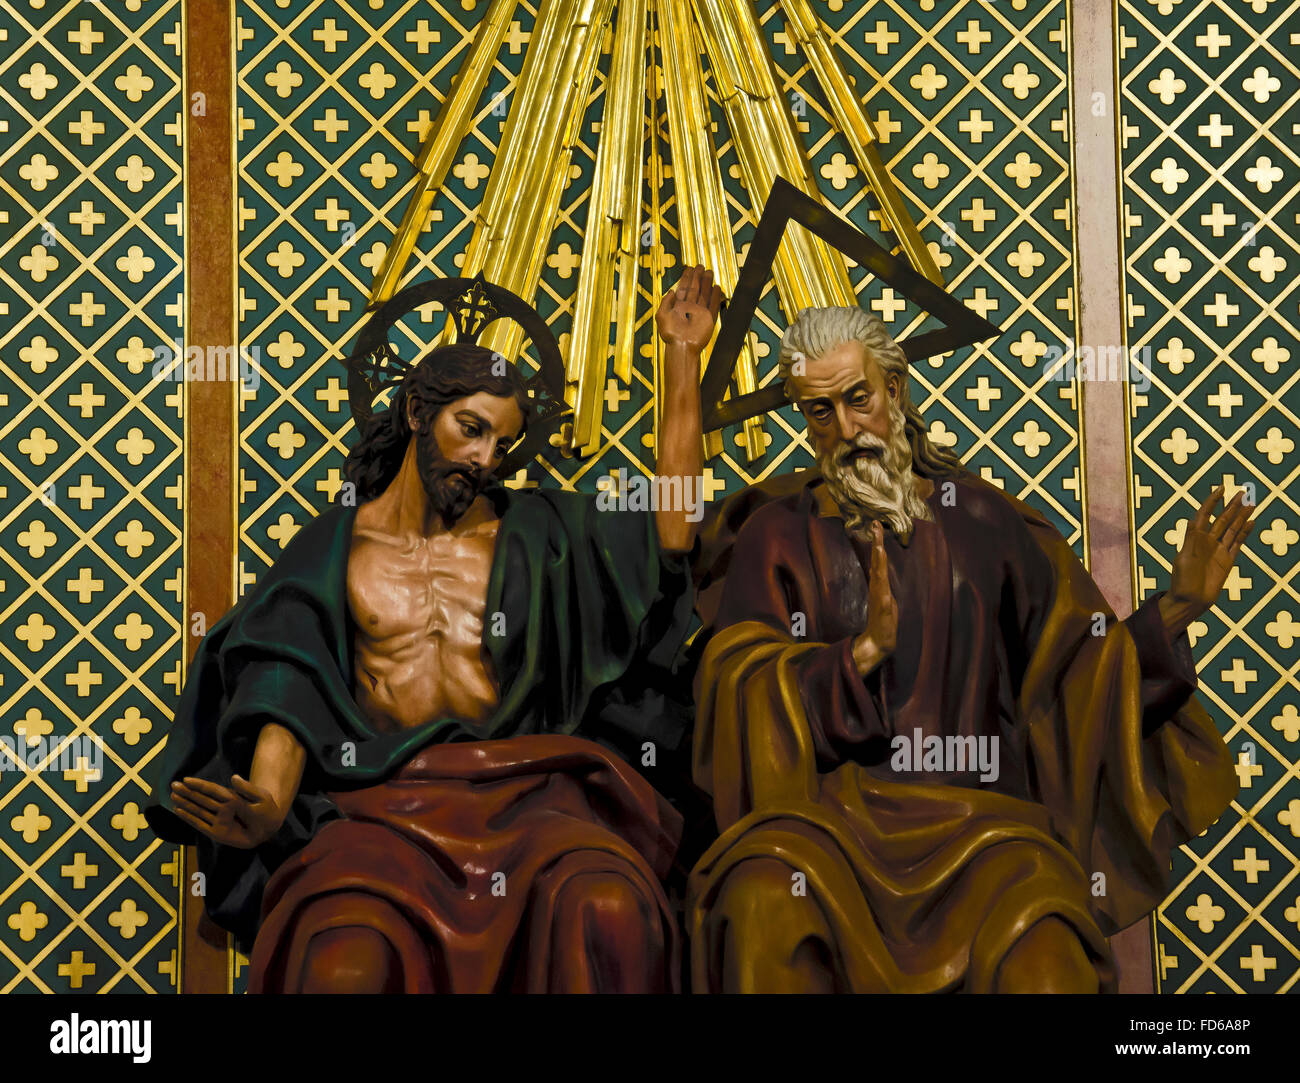 a sculpture of god and jesus in the almudena cathedral of madrid